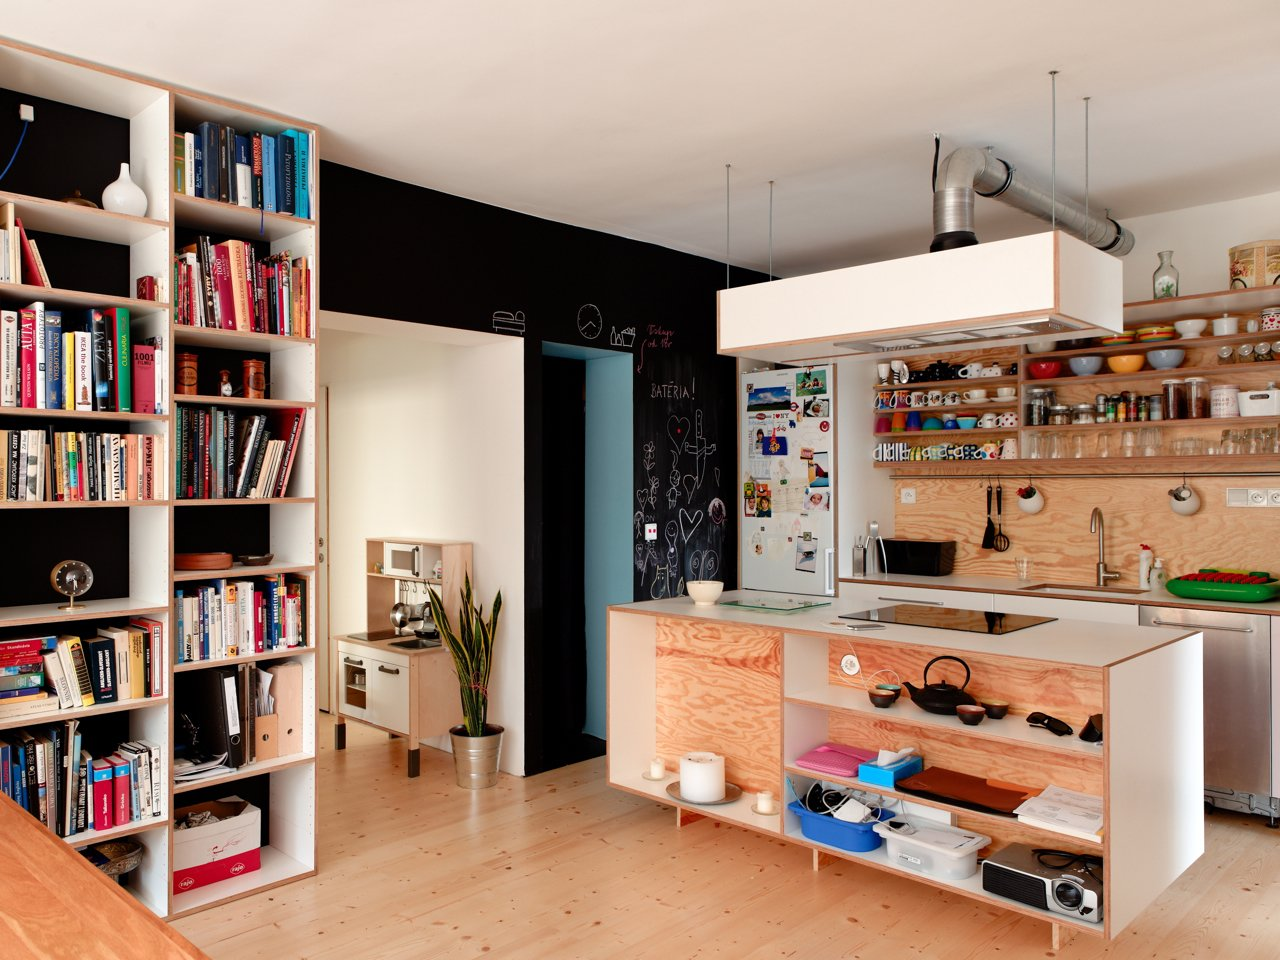 Kitchen, Wood Cabinet, and Range Hood Architecture firm Gut Gut designed a modular shelving system out of plywood that gets repeated throughout the apartment. Here, the kitchen island with induction cooktop and the bookshelves are clearly from the same family without looking like twins. A green Dish Doctor by Marc Newson for Magis adds a splash of color next to the sink and a chalkboard wall creates space to play.  Chalkboard Walls in Kitchens and Kids' Rooms by Jaime Gillin from Live-Play Spaces at Home